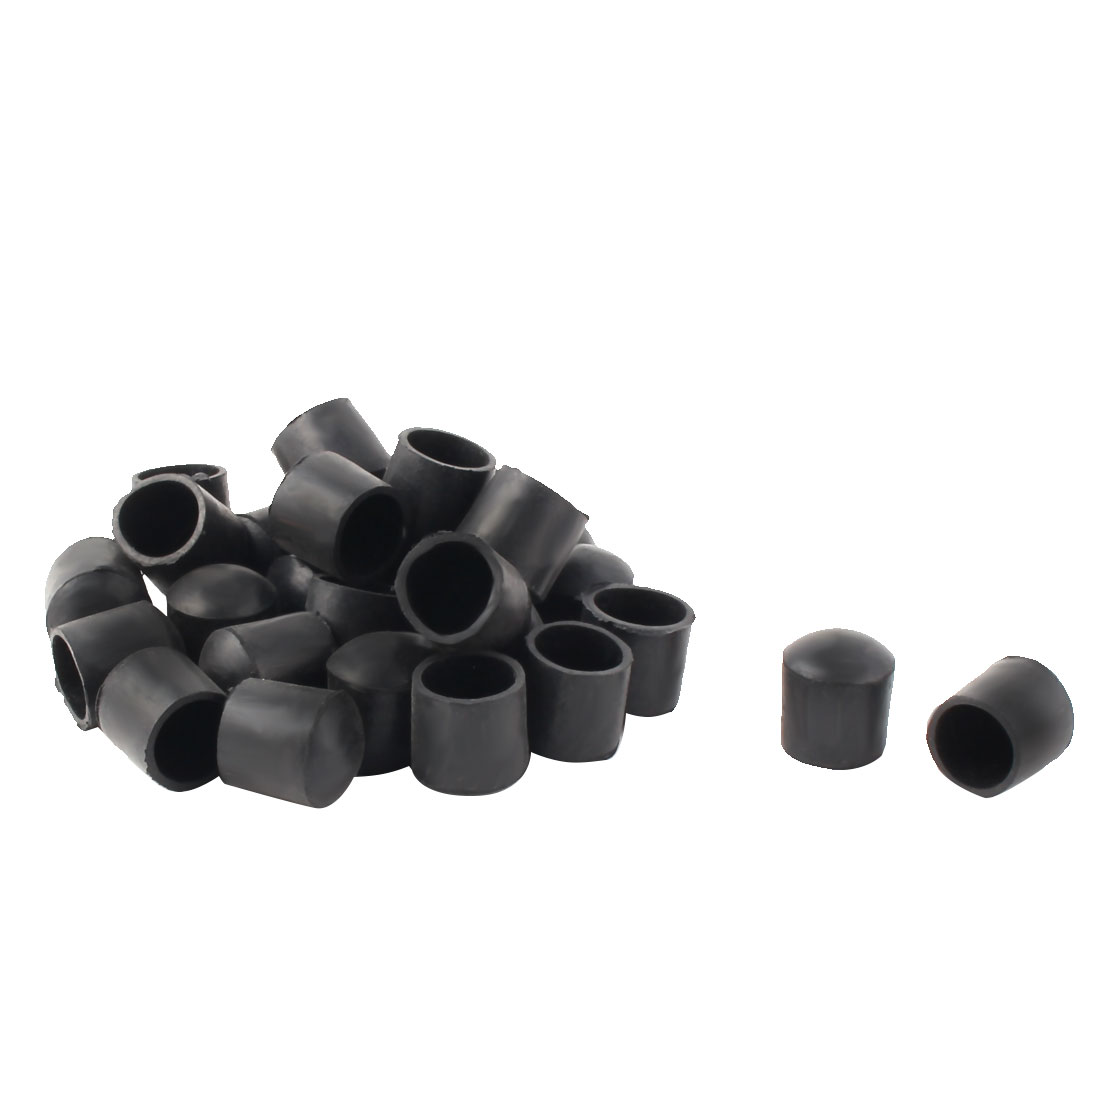 21mm Dia Round Tube Insert Table Desk Leg Foot Rubber Protector Caps Black 30pcs